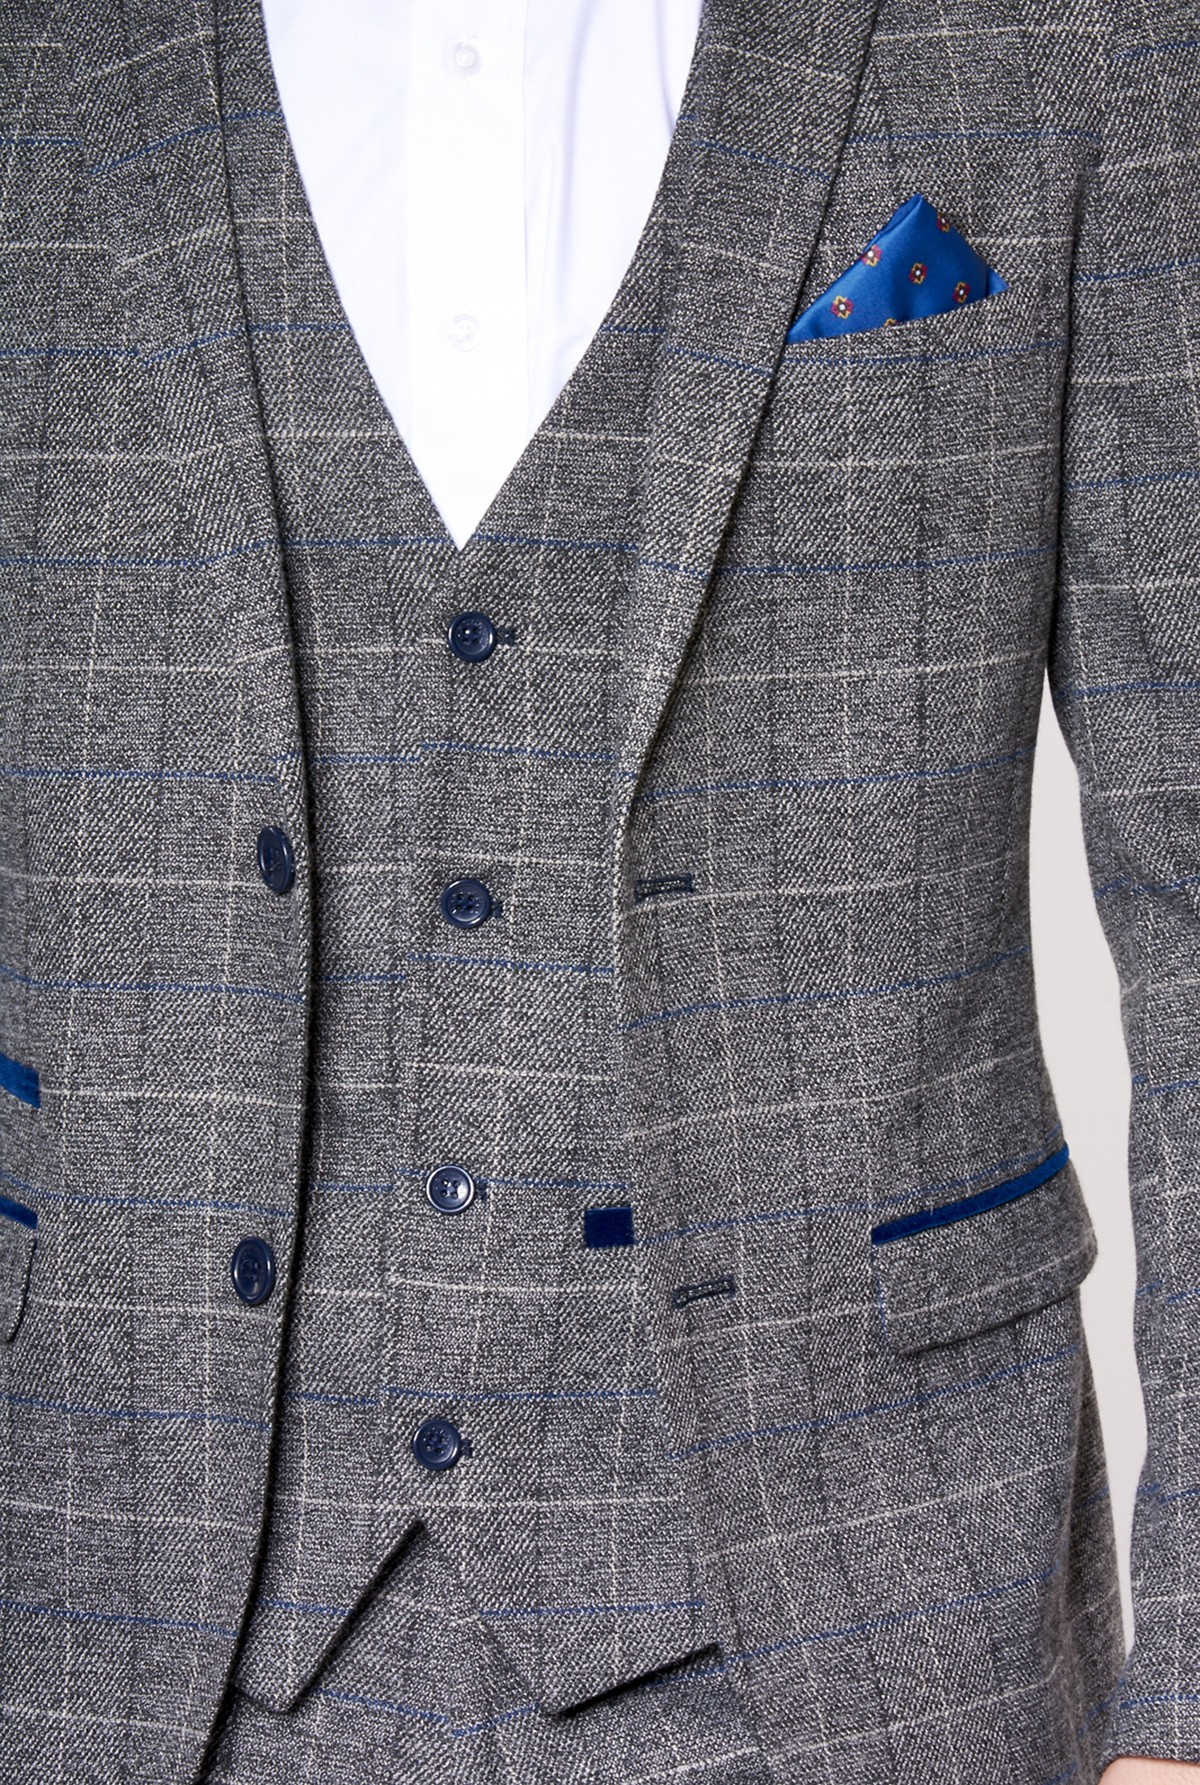 Scott Grey Tweed Check Print Three Piece Suit Suits Delivered